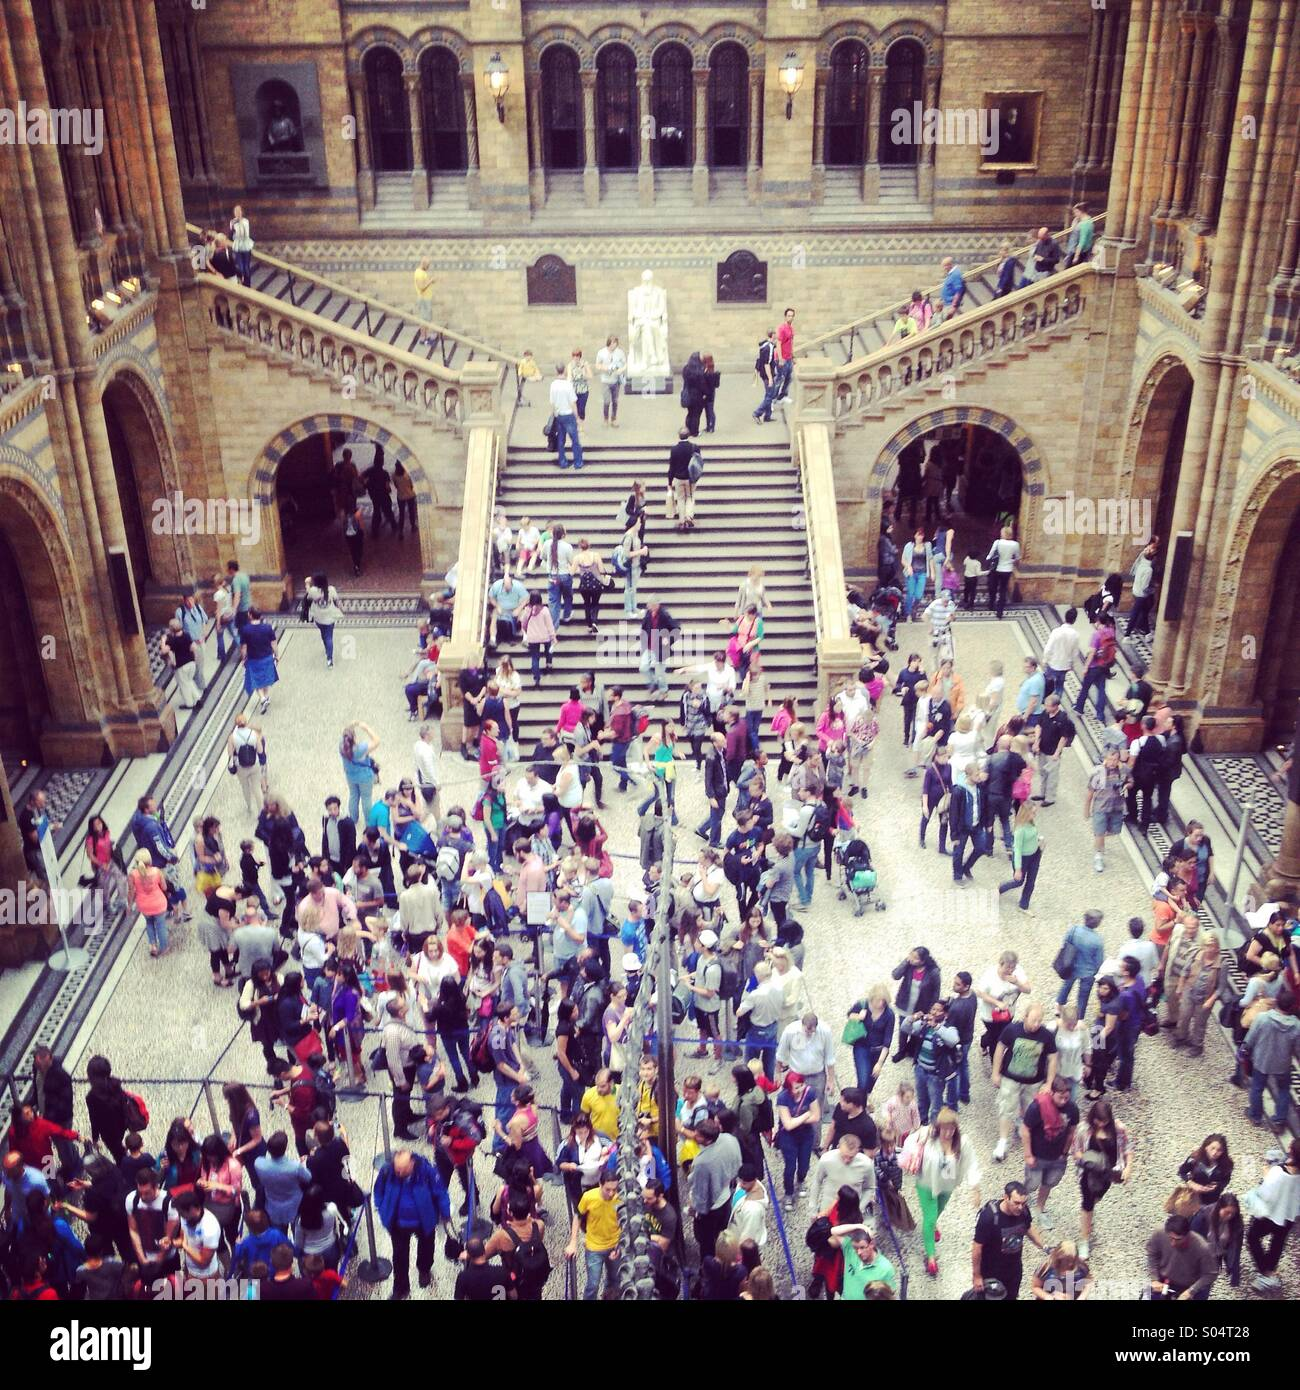 Inside the Natural History Museum in London - Stock Image